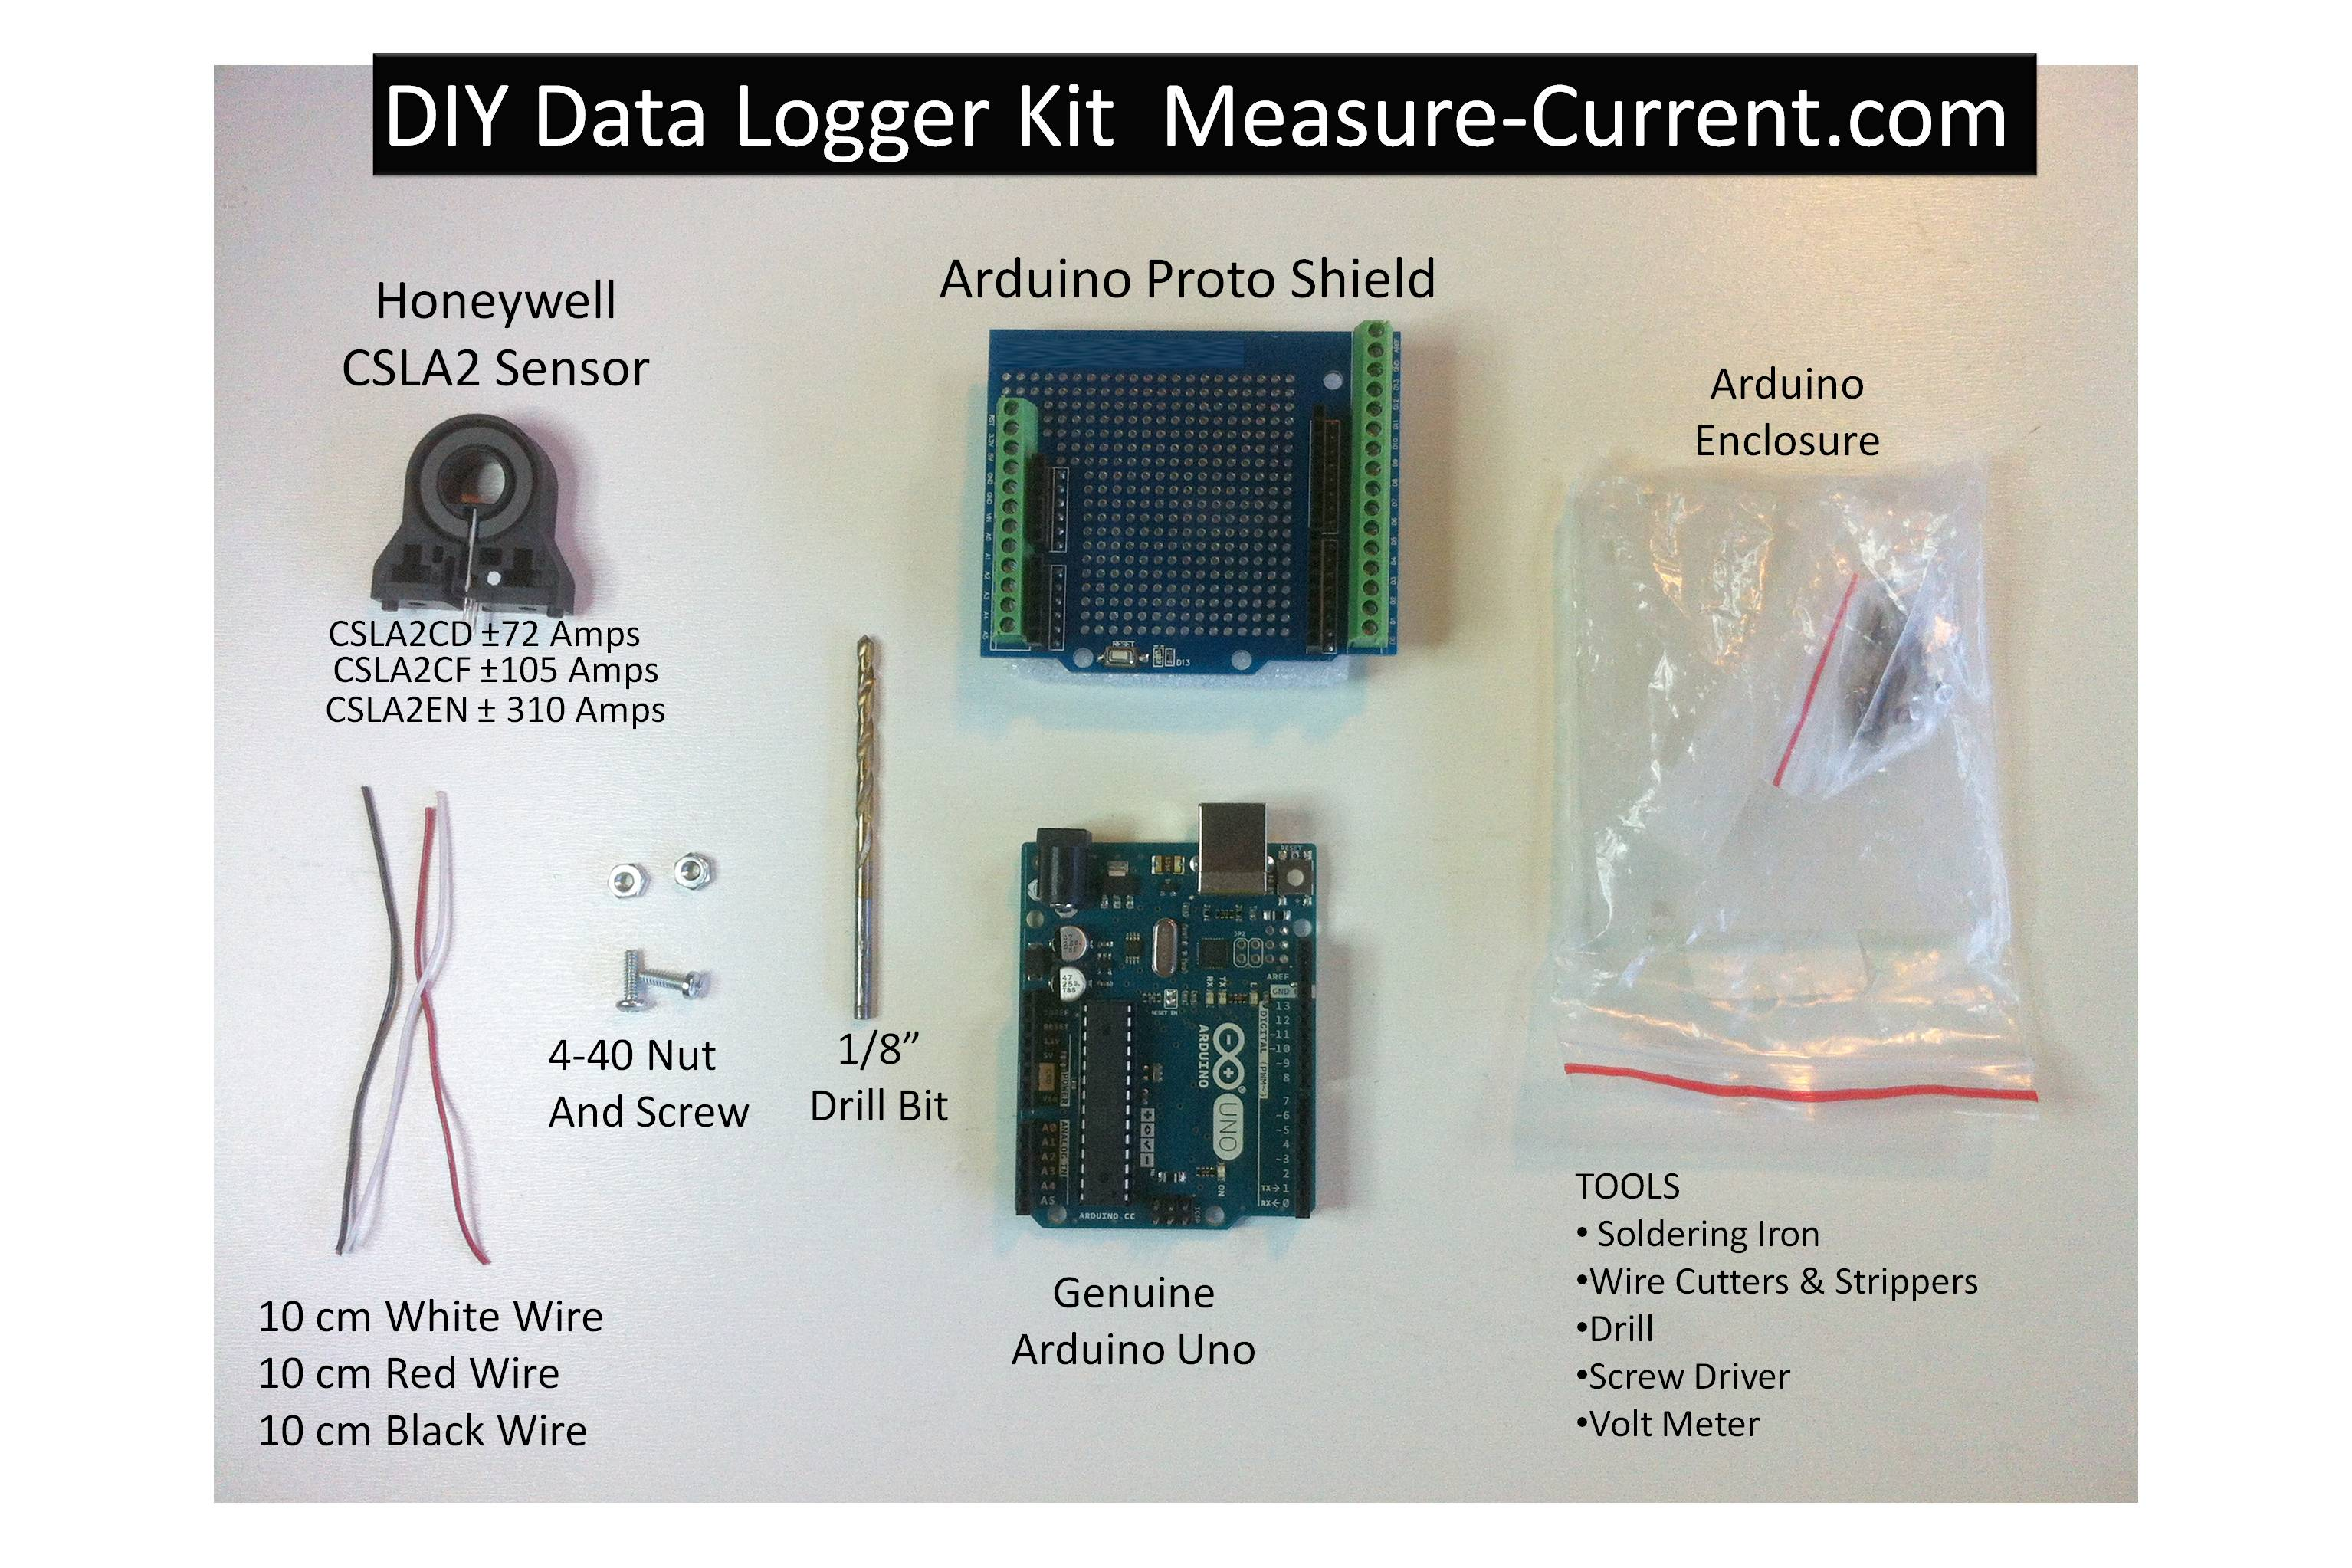 Diy byo do it yourself ac dc hall effect current sensor transducer diy arduino current amps data logger kit free plans solutioingenieria Images